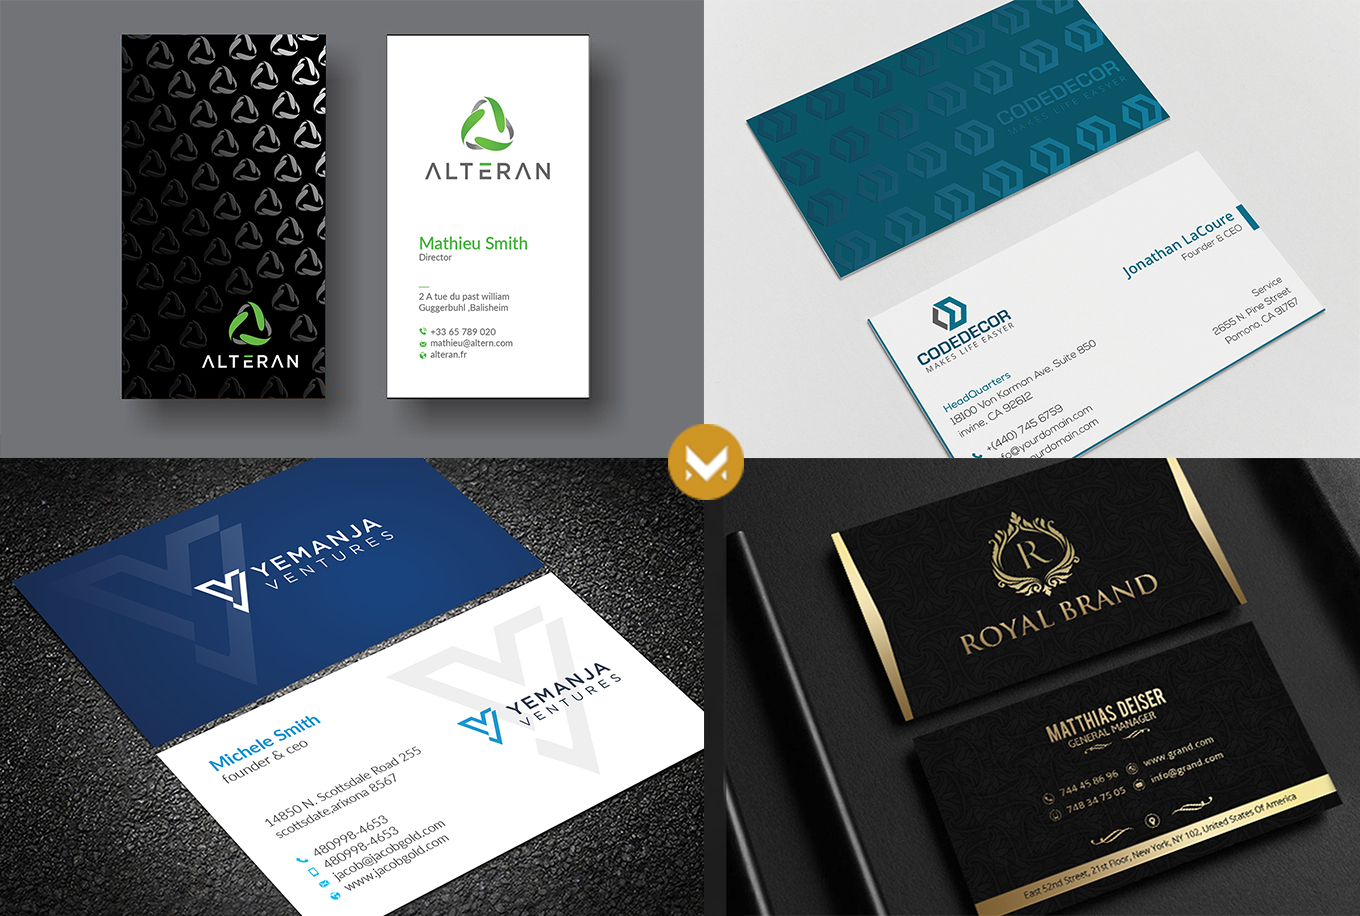 Design Amzing business card in 24 hr